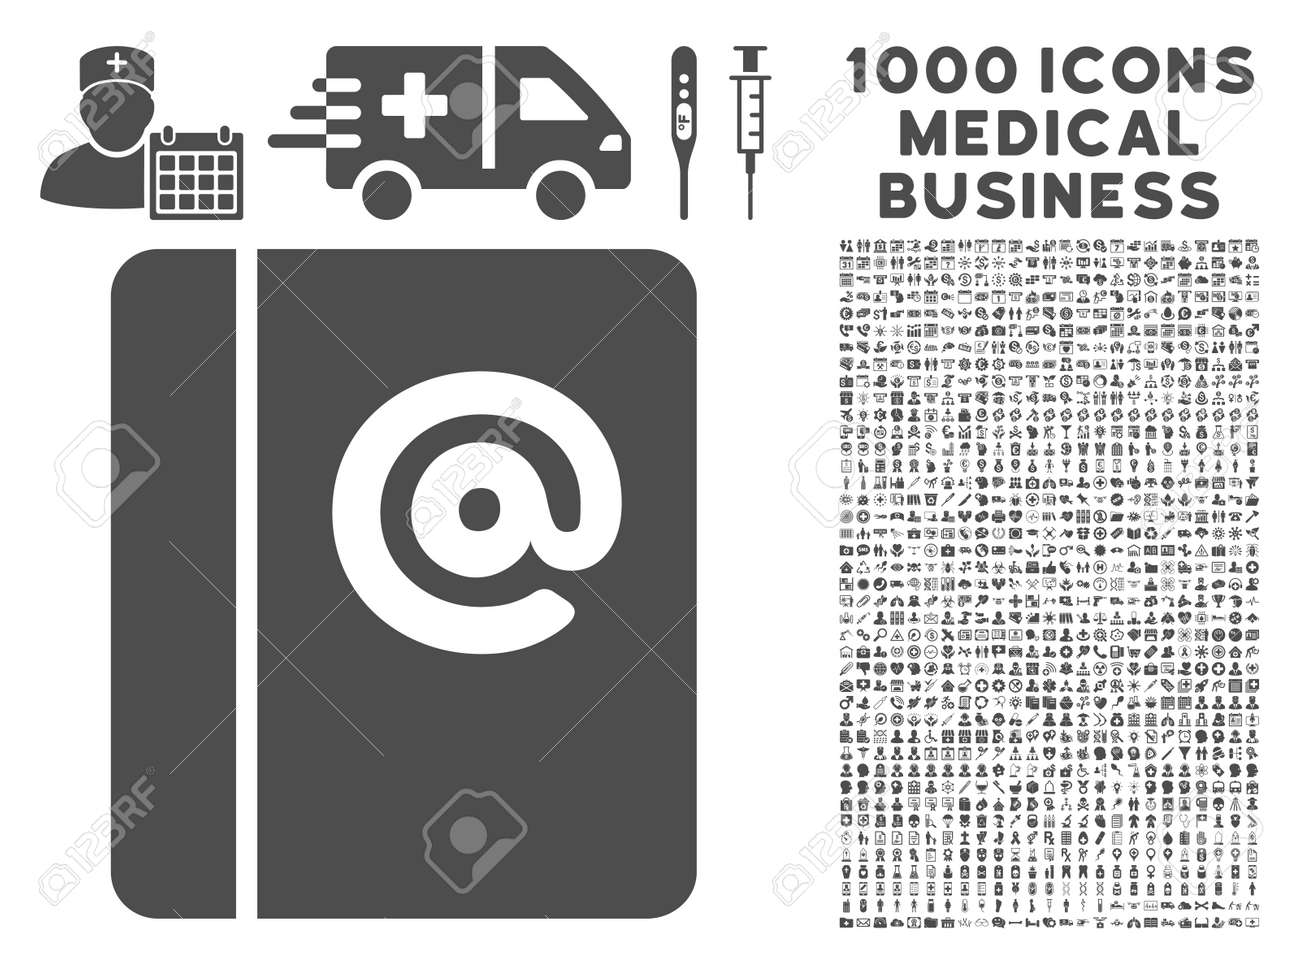 gray emails icon with 1000 medical business glyph design elements